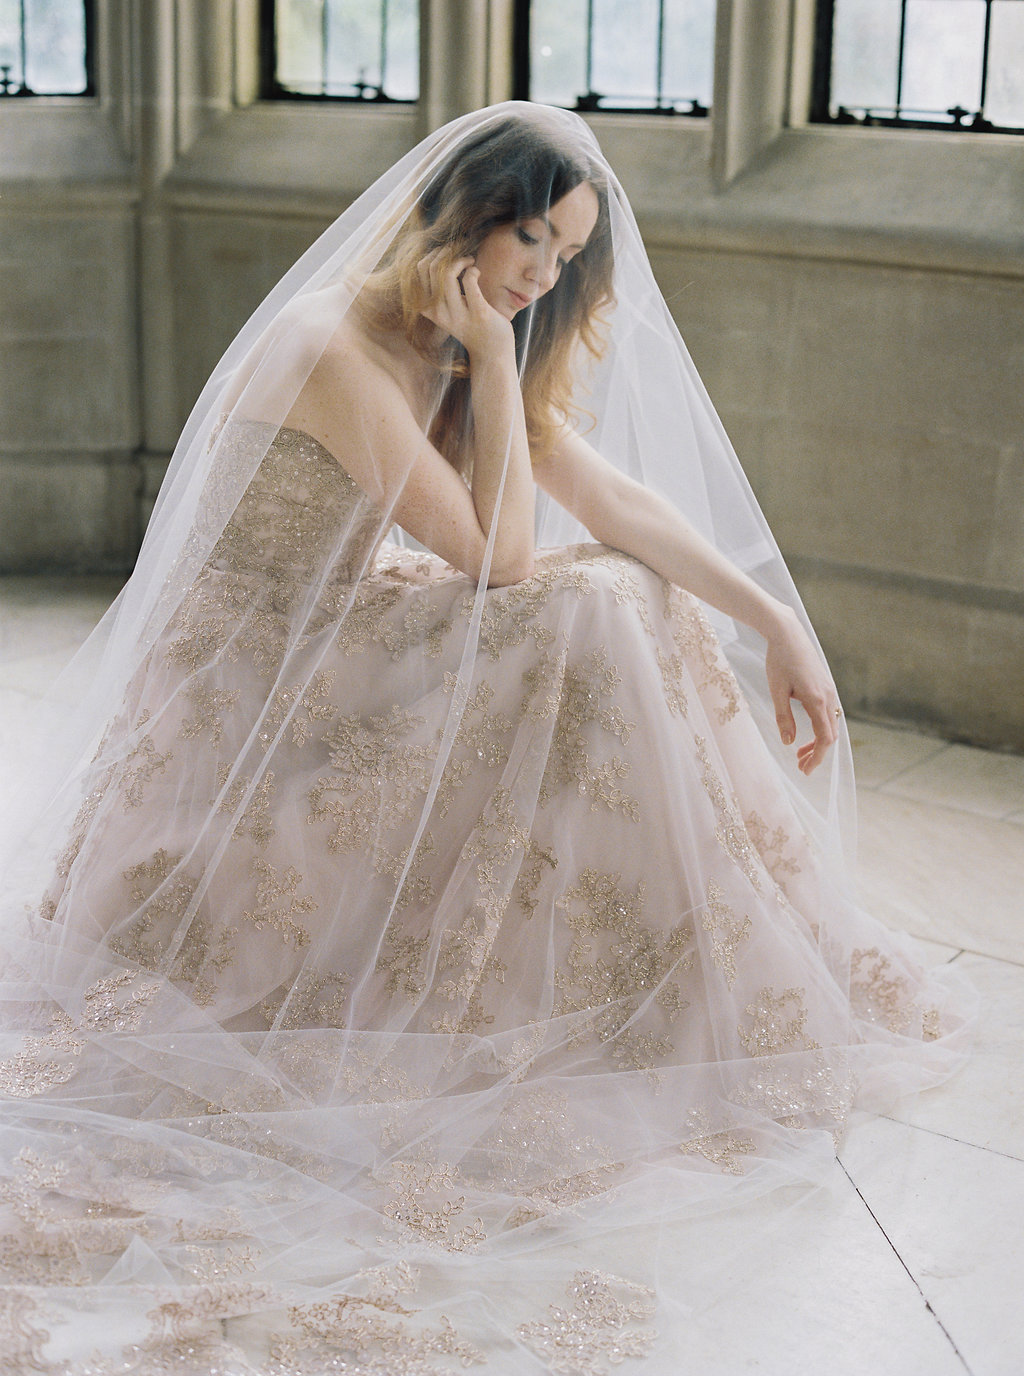 Bride in blush colored wedding gown and veil